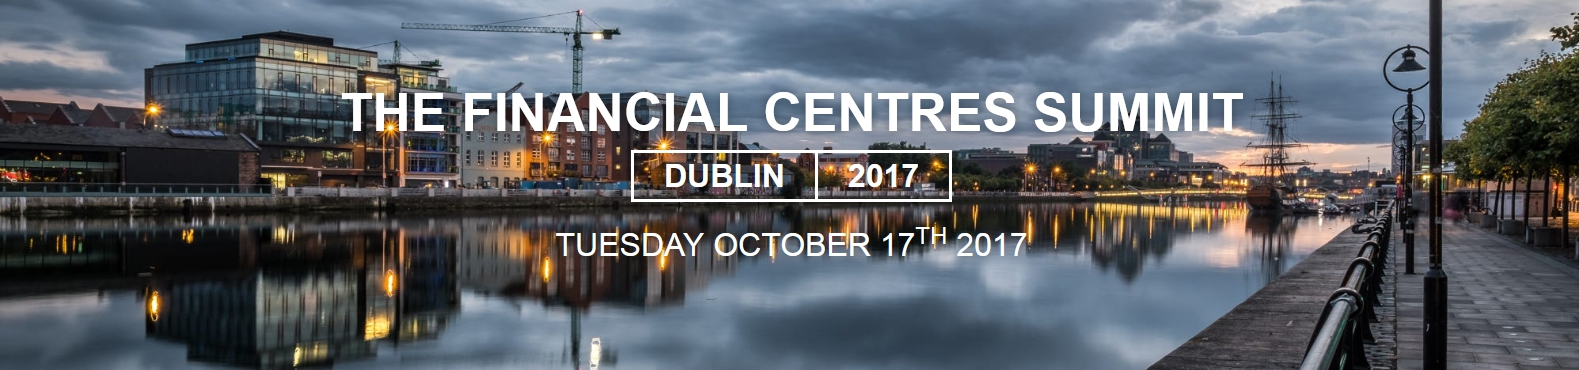 Financial Centres Summit 2017